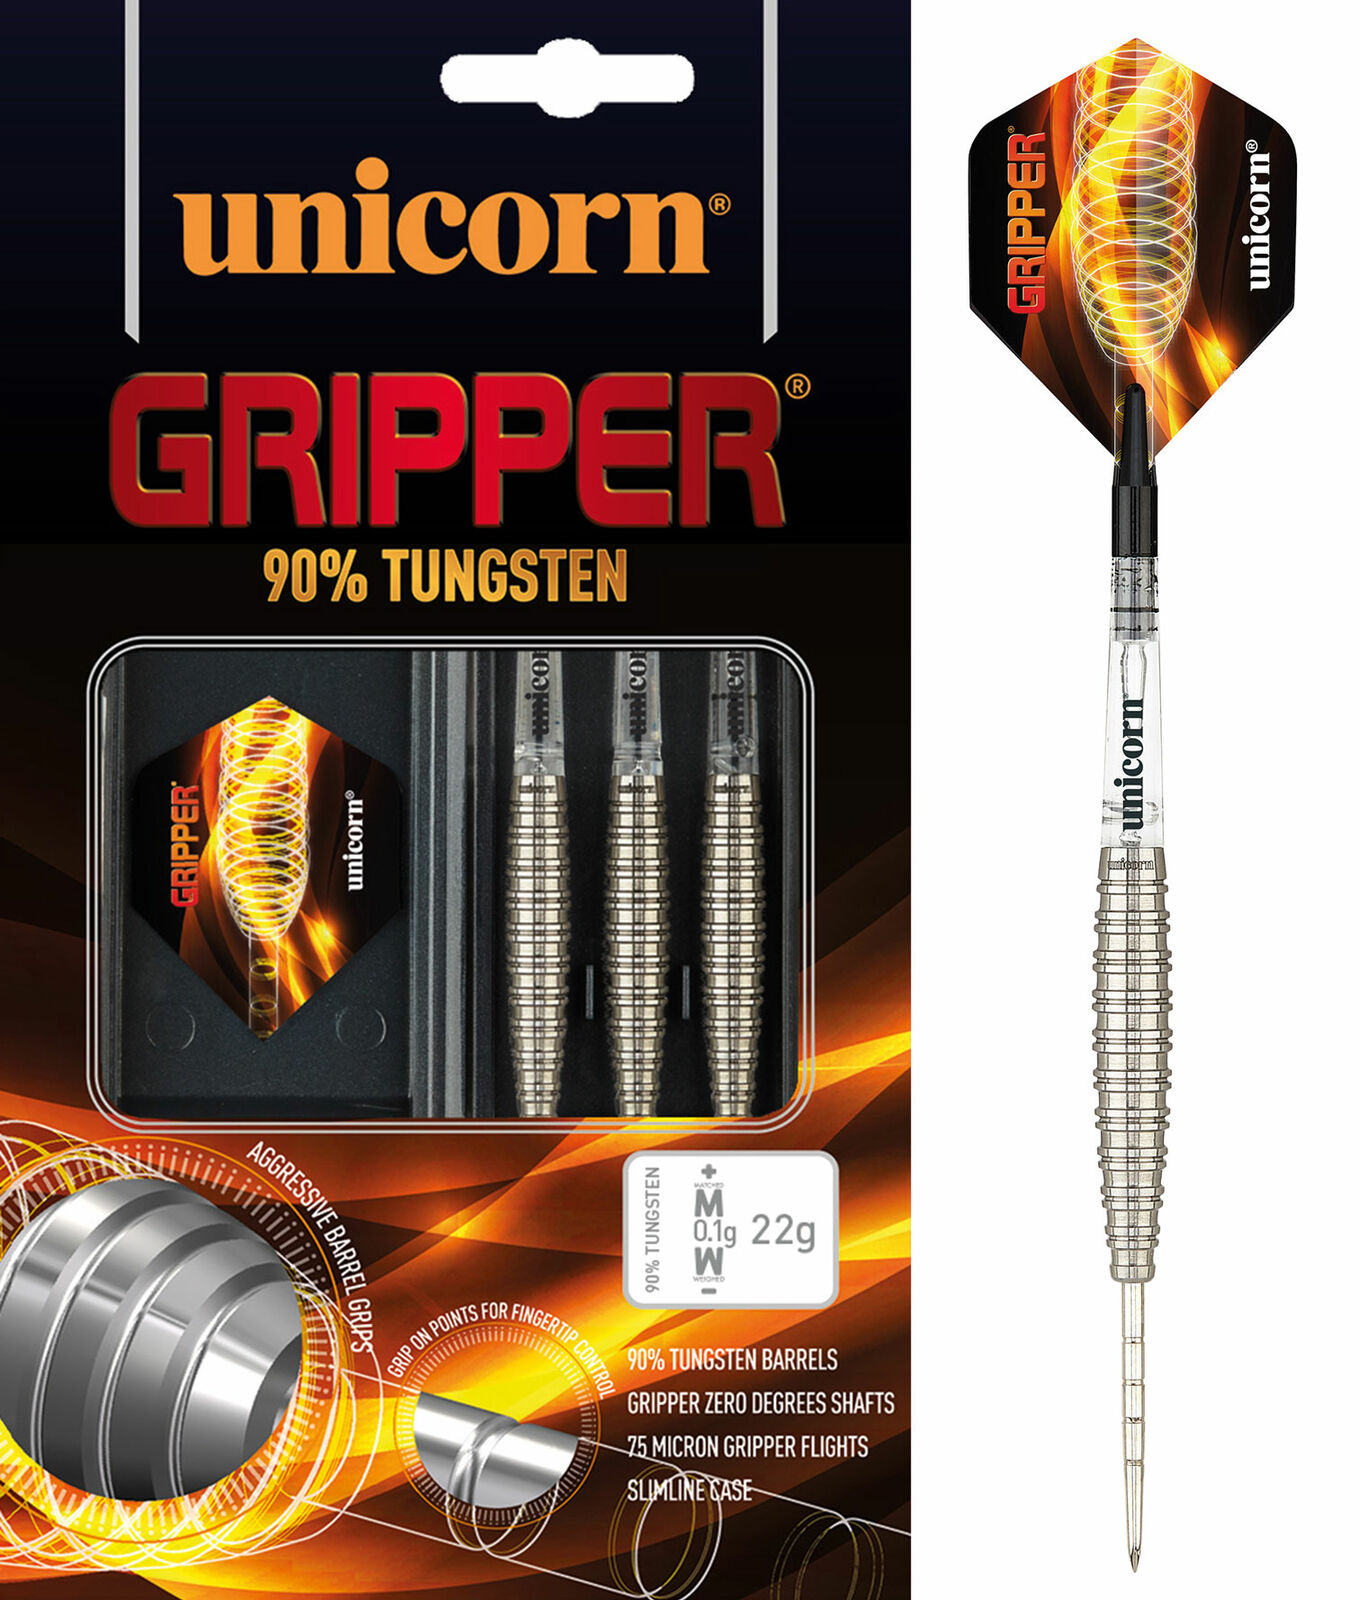 Unicorn Gripper Steel Darts 1 Satz 24 Gr.